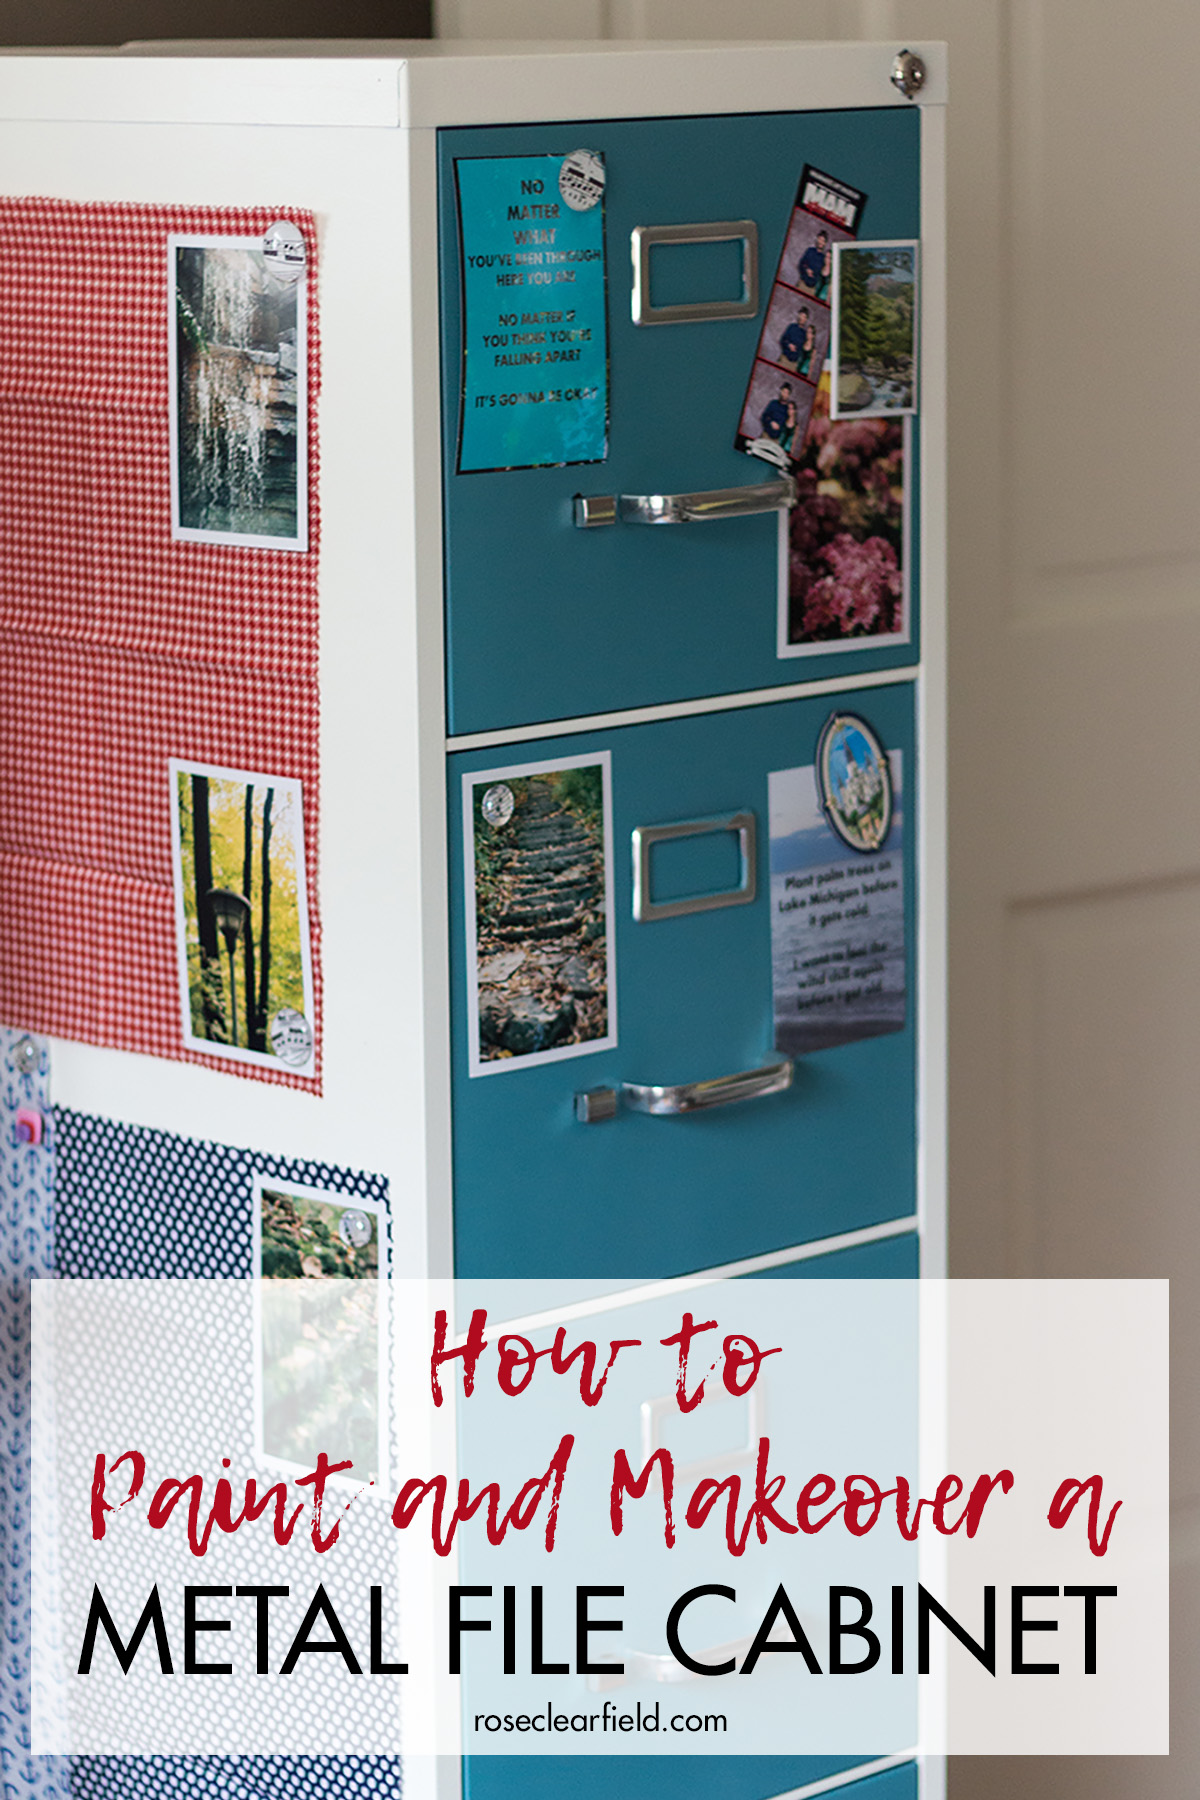 How To Paint And Makeover A Metal File Cabinet Rose Clearfield